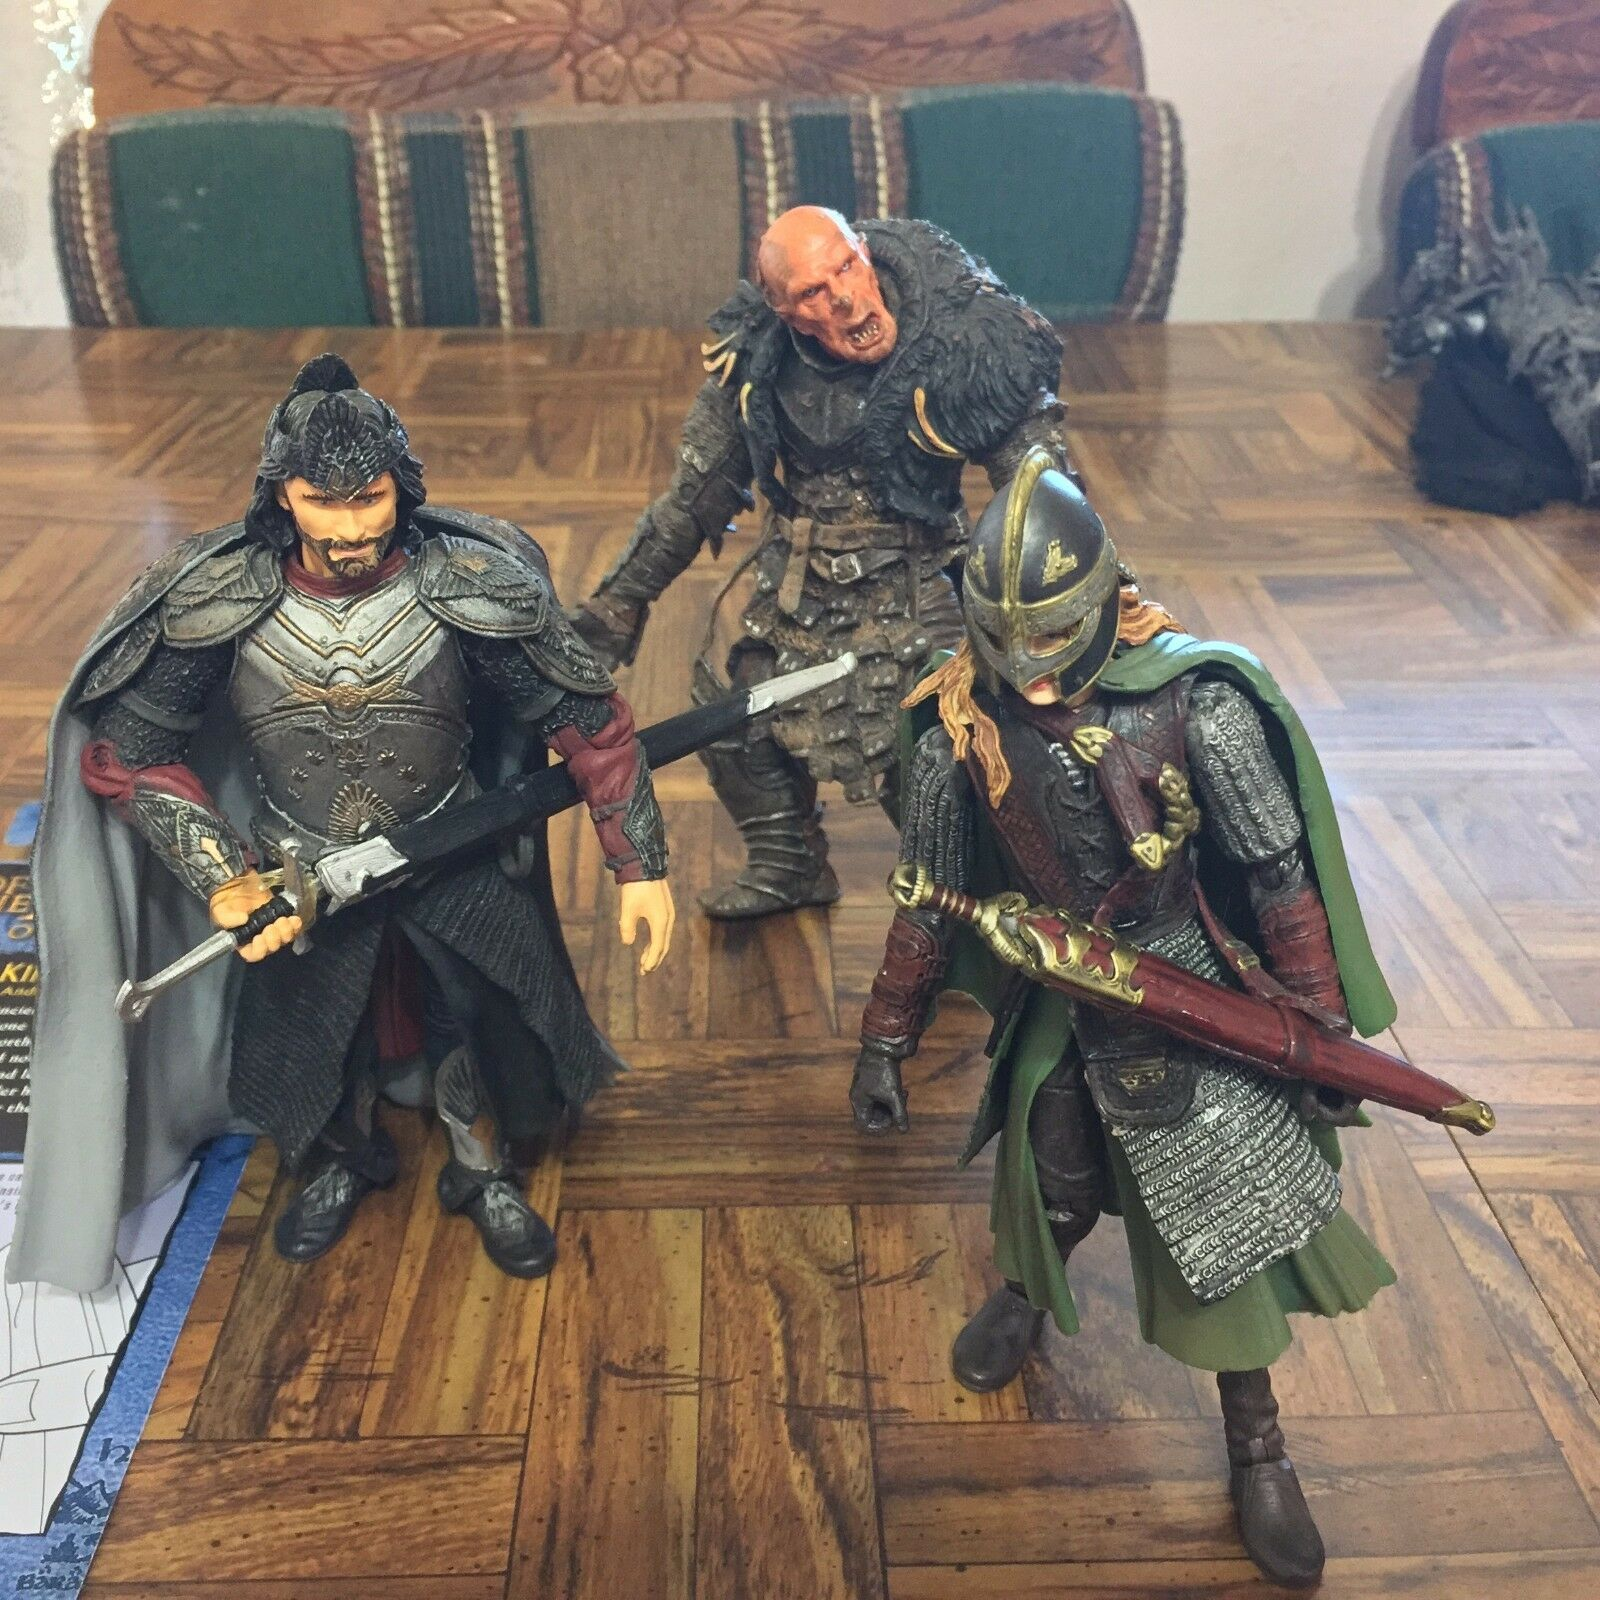 Toy Biz The Lord of the Rings redK Aragorn King Of Gondor + Orc + Eowyn Lot x3